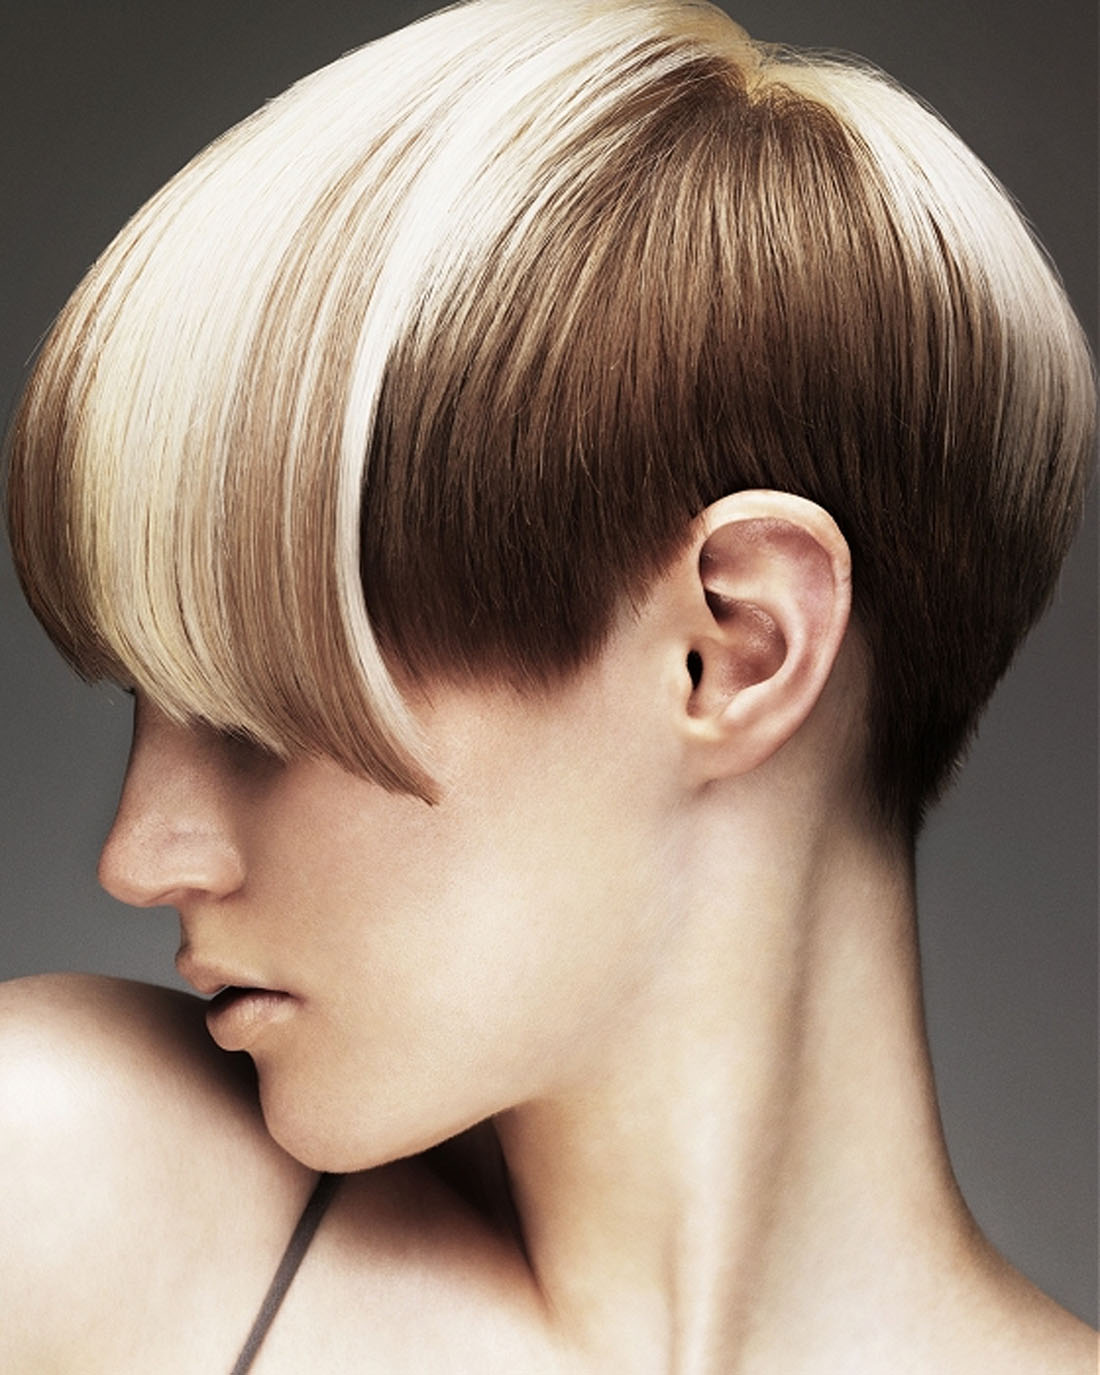 Hair-Color-Trend-of-Blonde-Hair-Short-Haircuts-with-Long-Bangs.jpg